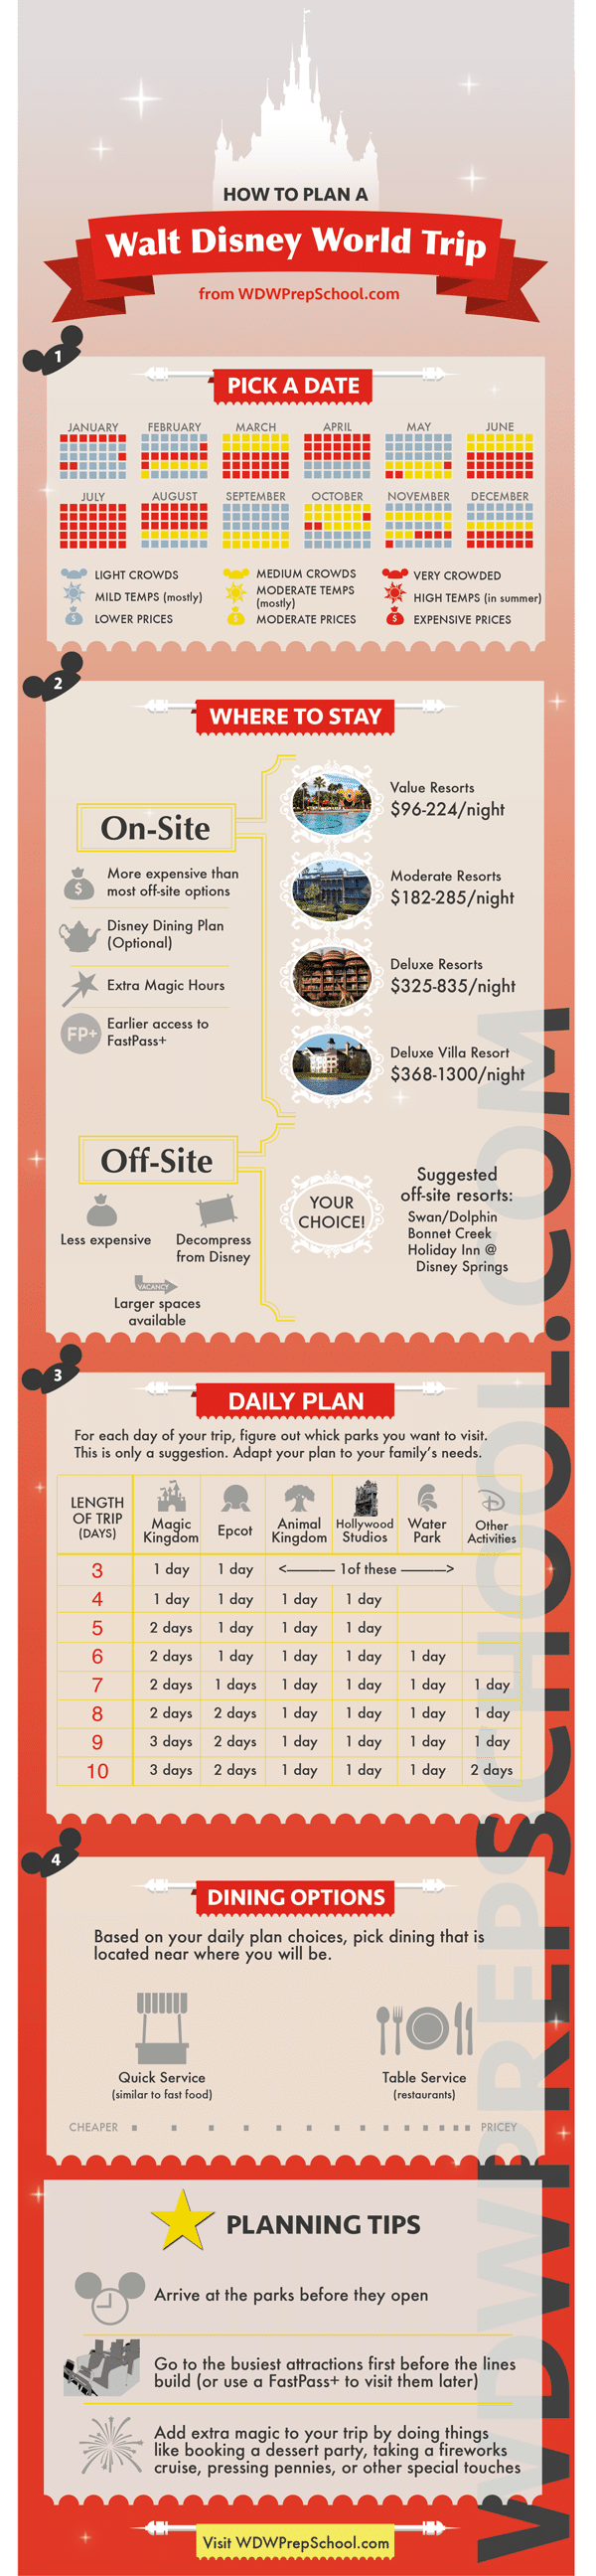 Walt Disney Trip INFOGRAPHICv5 - How to plan a Disney World trip (6 step process)